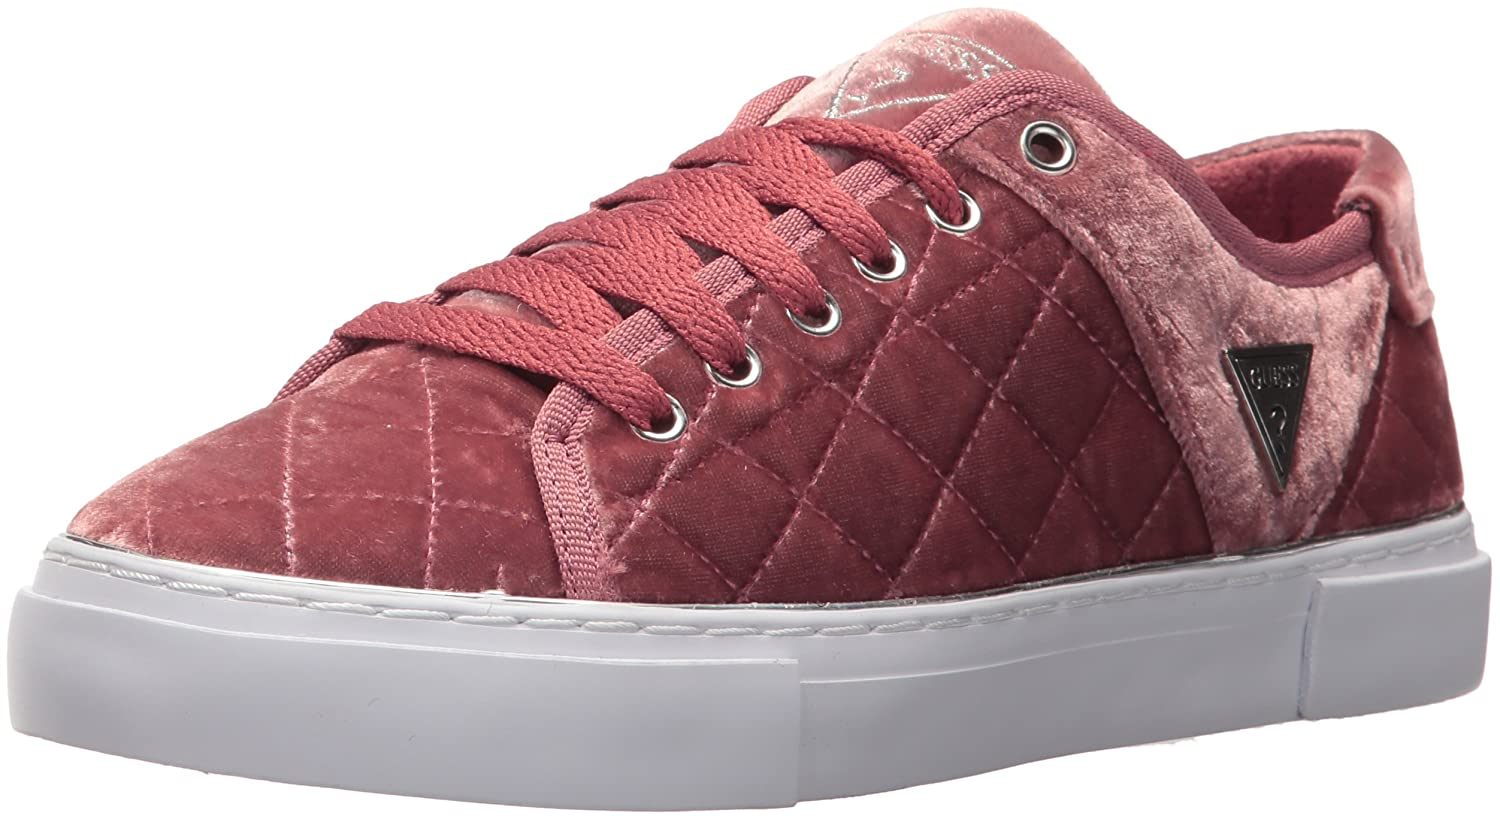 GUESS Women's Goodone2 Sneaker B074V26VKG 9 B(M) US|Light Pink